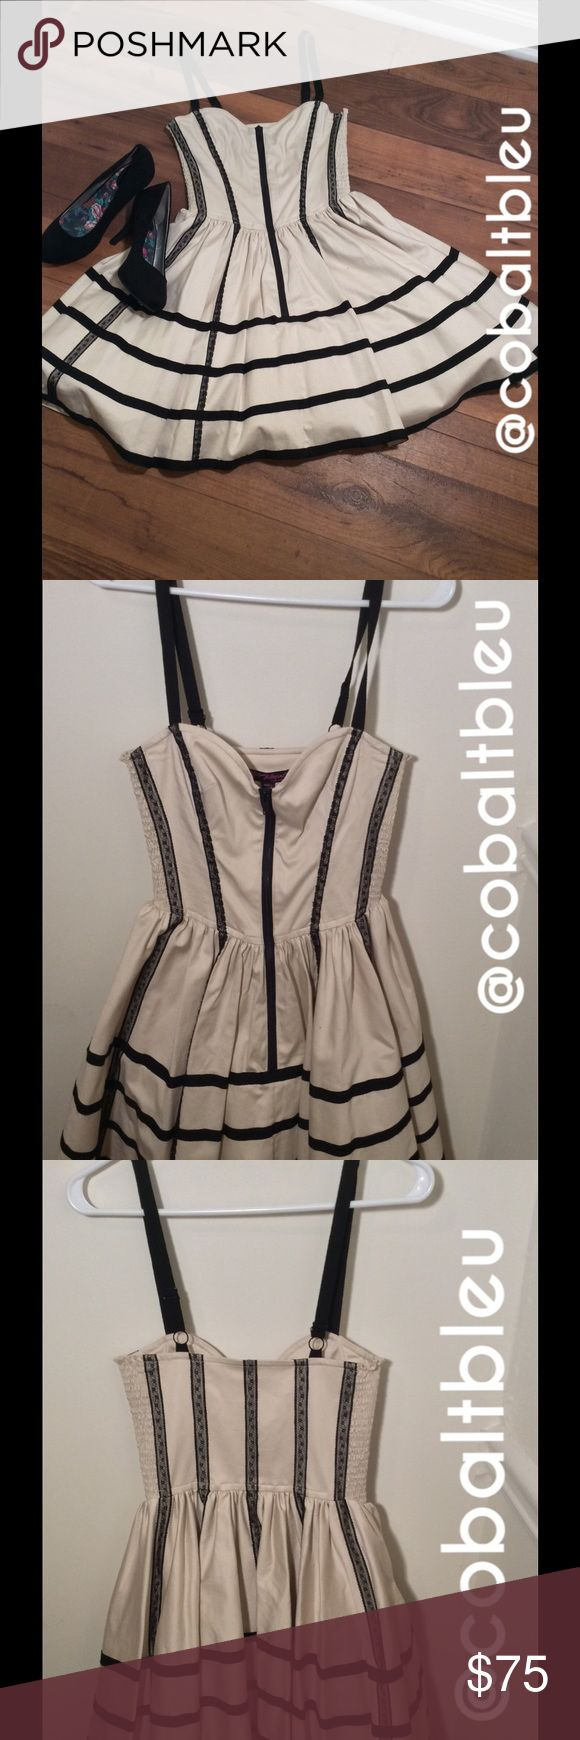 SALEBetsey Johnson Cream party dress✨ 20% off bundles of 2+ items this weekend ONLY!! NWT! This cream dress is very classy, but little elements like the zipper being in the front along with the lace along the back give it a unique and fresh twist. There is tulle underneath, size 2. This listing is for the dress only and does not include the shoes. Betsey Johnson Dresses